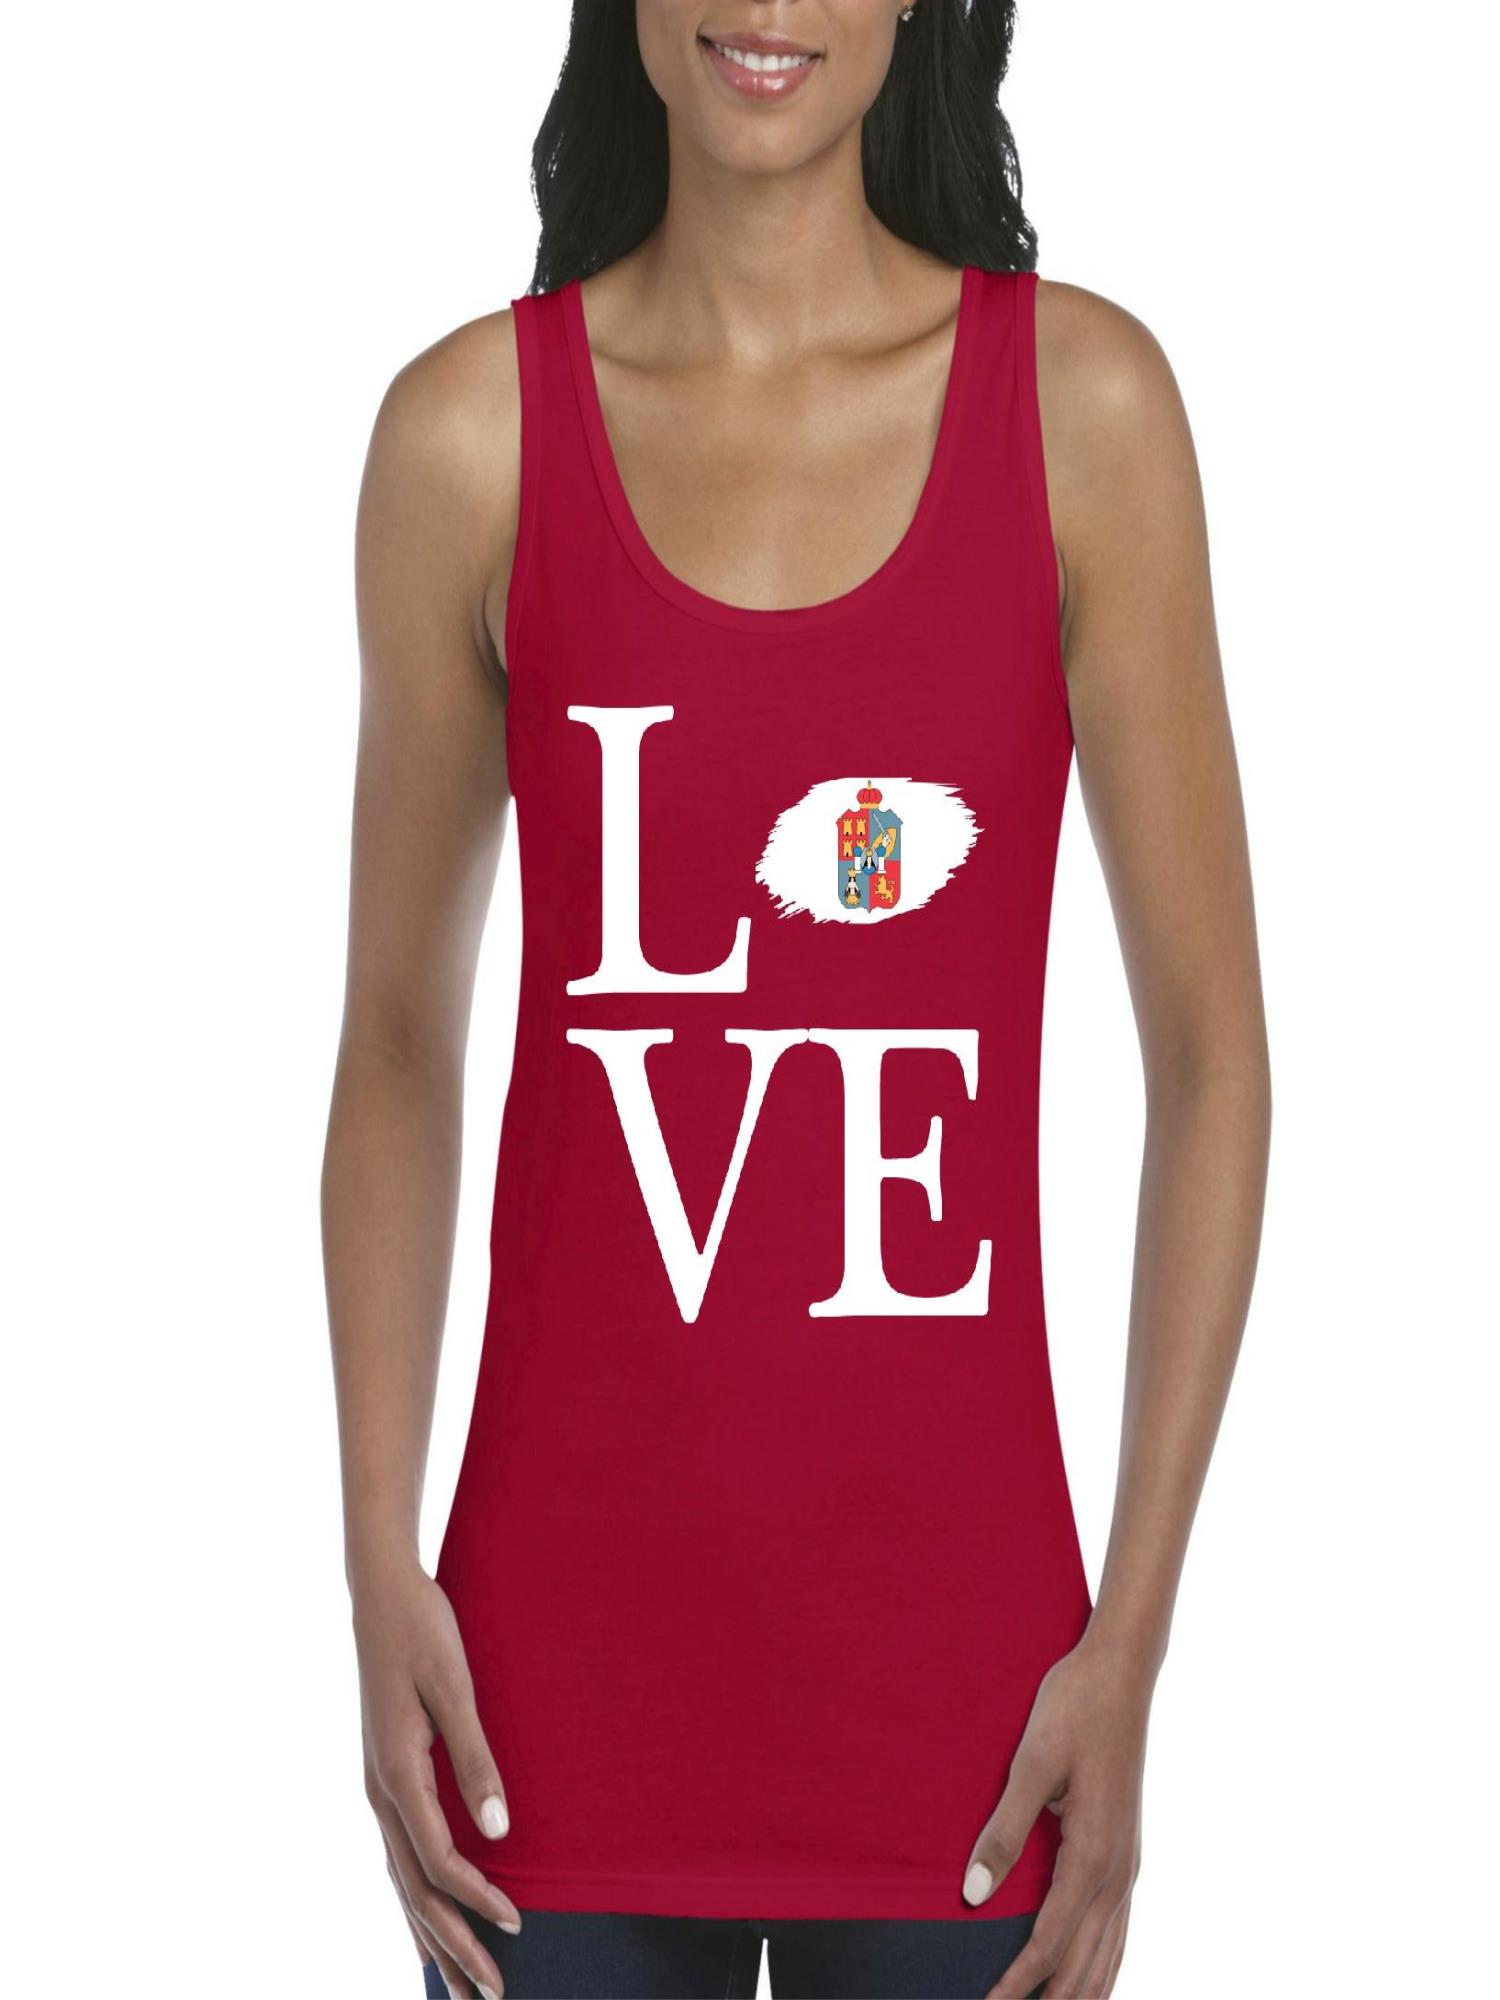 0b7702462d12a3 Normal is Boring - Love Mexico State of Tabasco Women s Tank Top Clothes -  Walmart.com